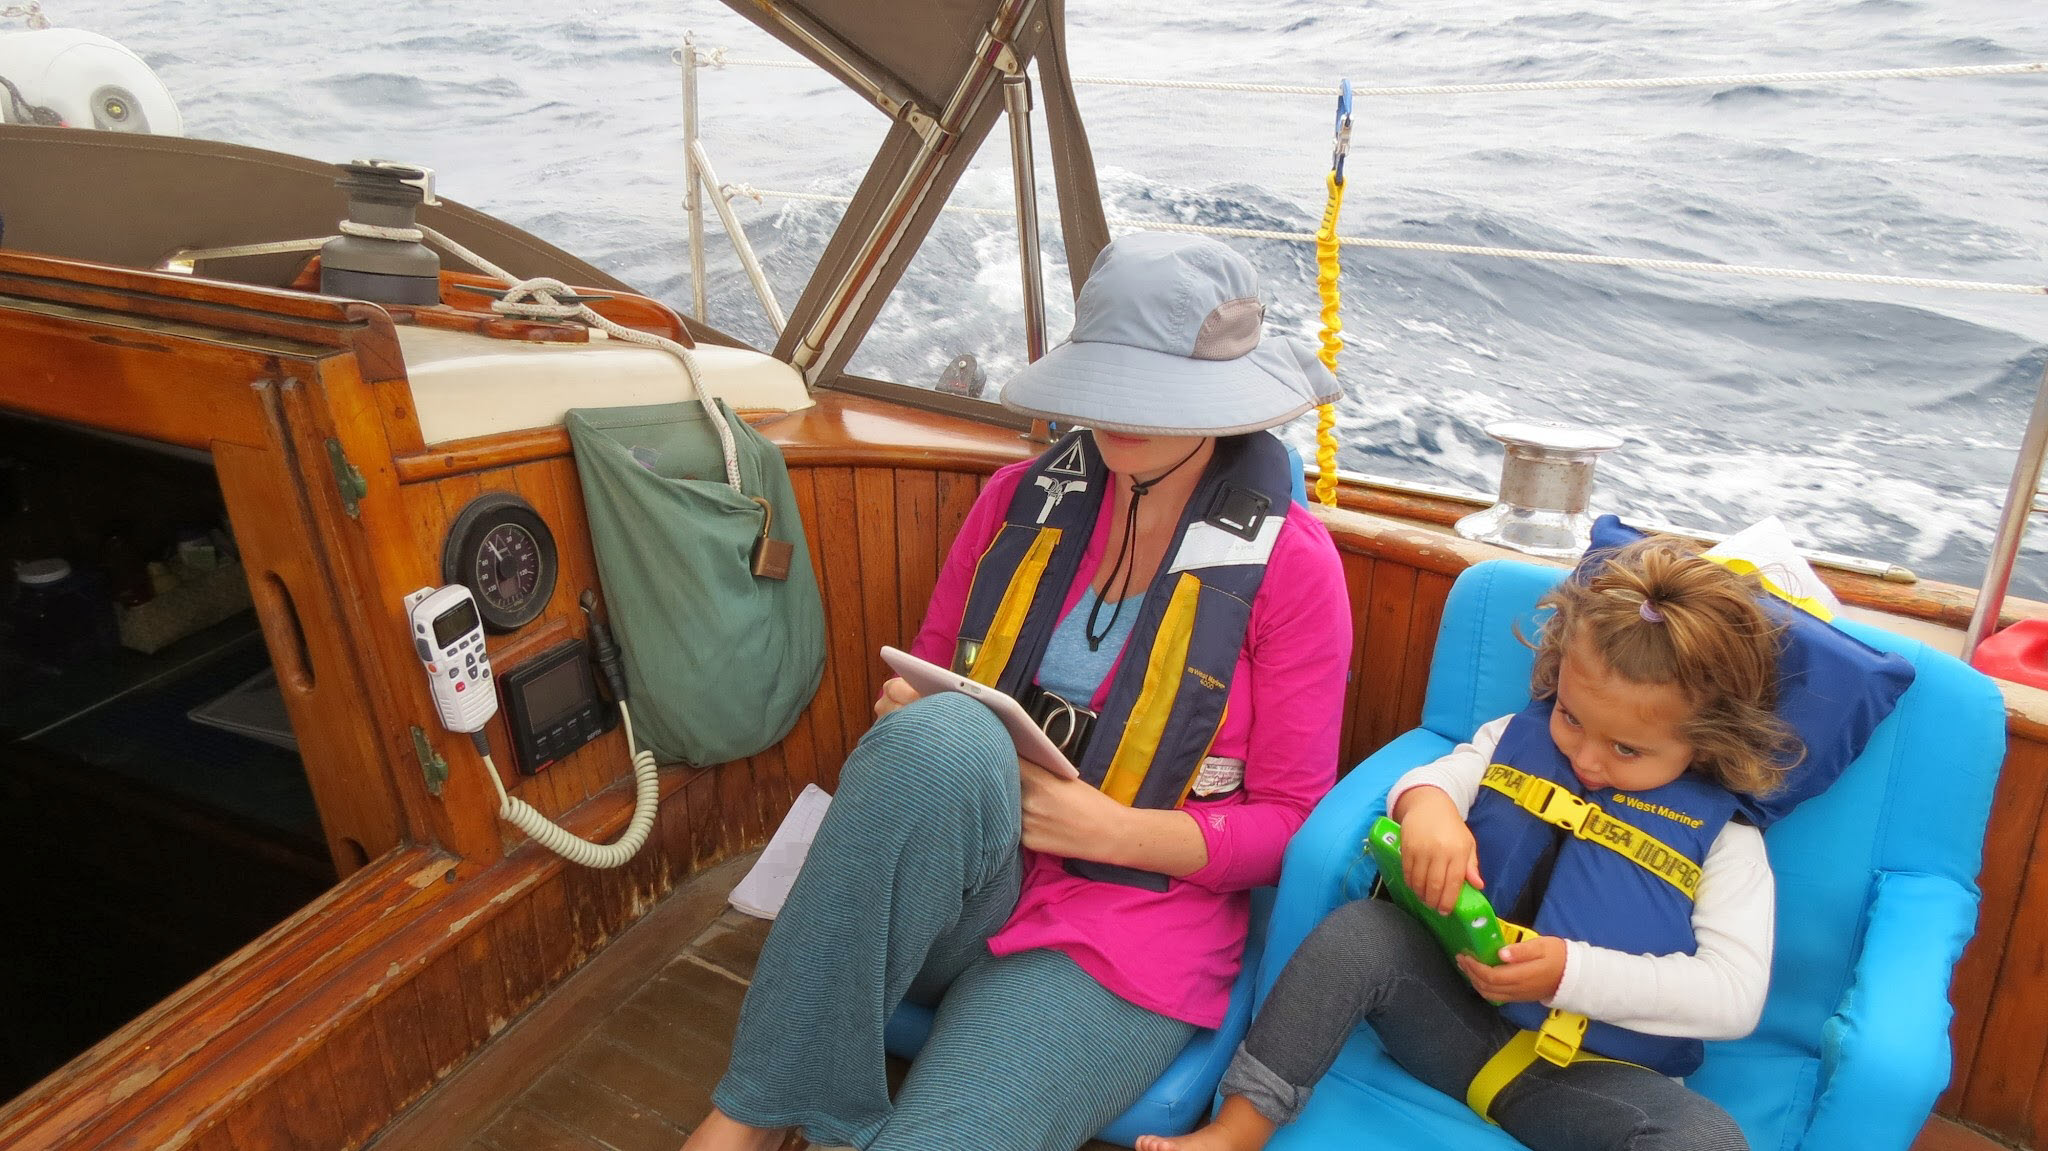 Charlotte and Cora Kaufman. Sailing across the Sea of Cortez from La Paz to La Cruz de Huanacaxtle, Nayarit. December 2013.